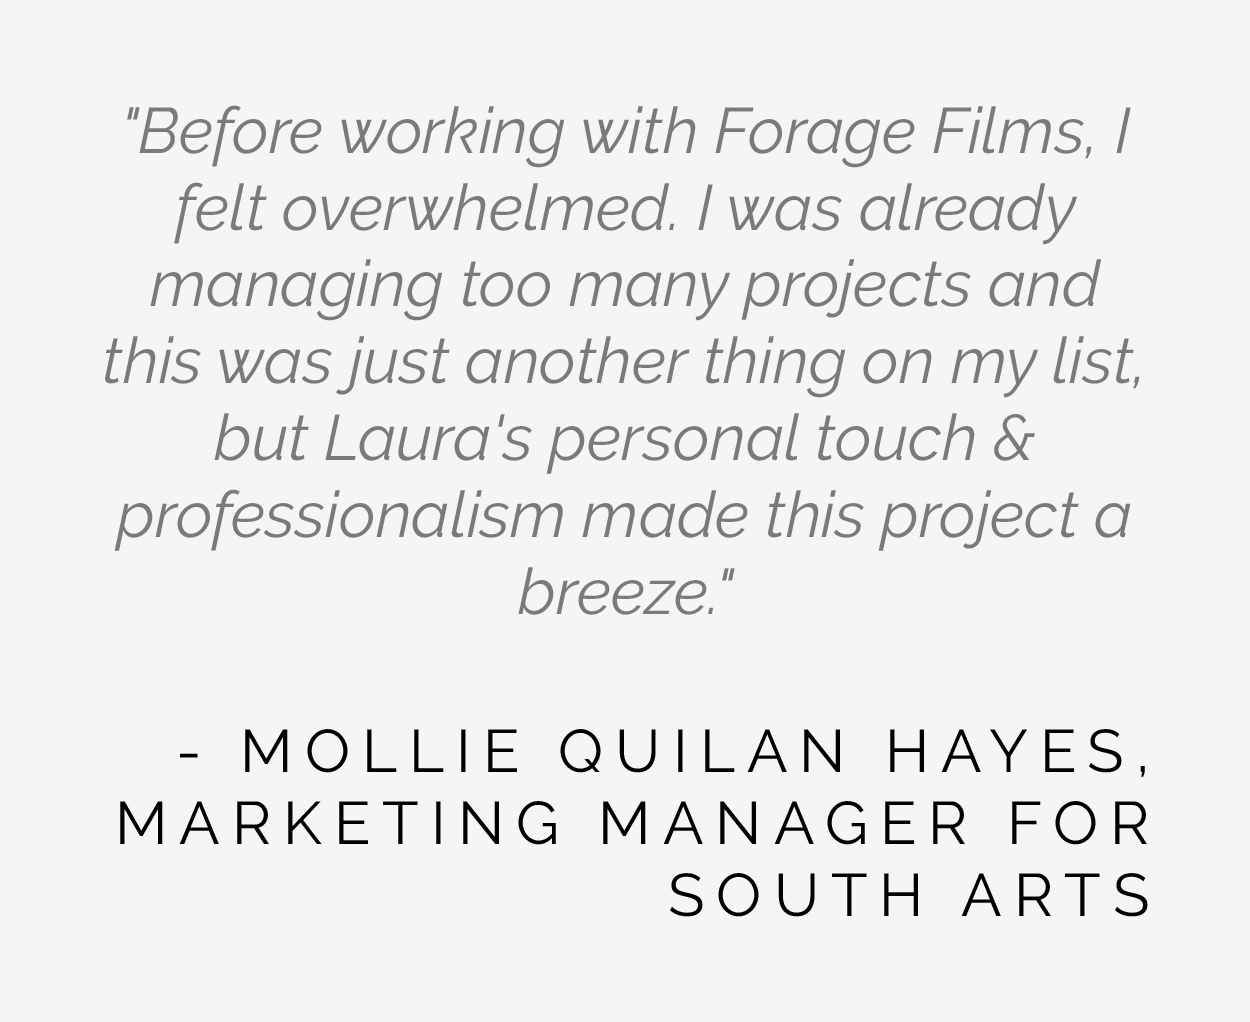 forgage-films-south-art-testimonial copy.jpg